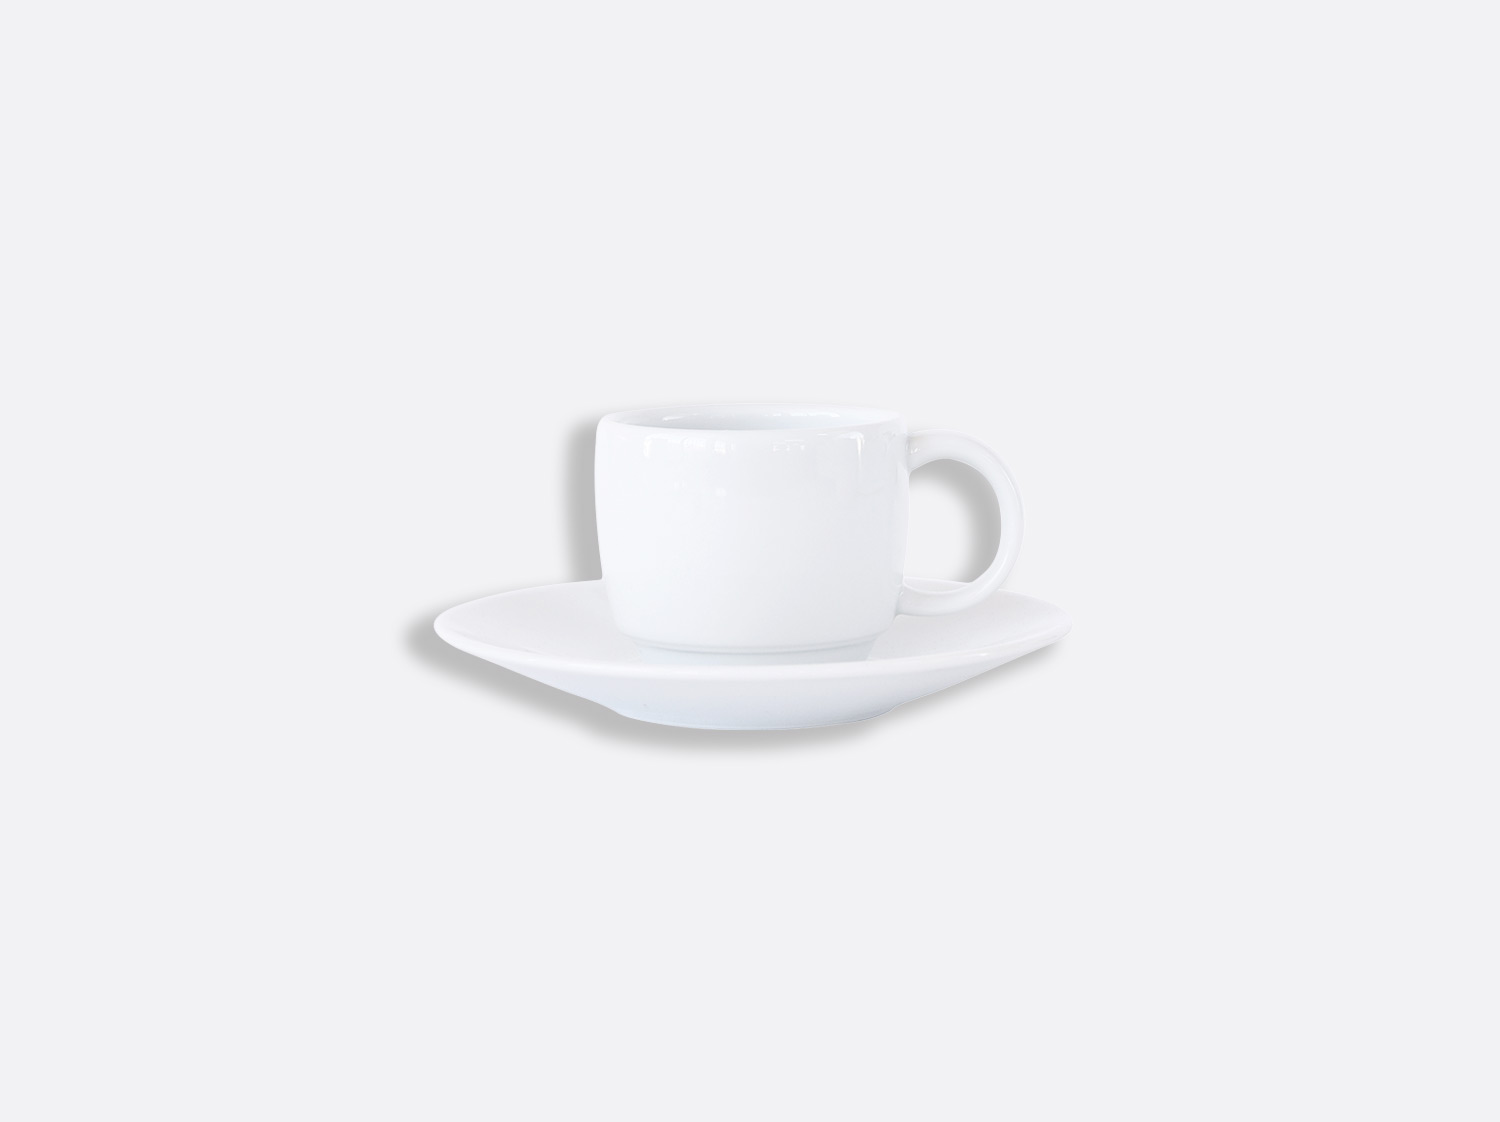 Bouleempilable pcafe 1